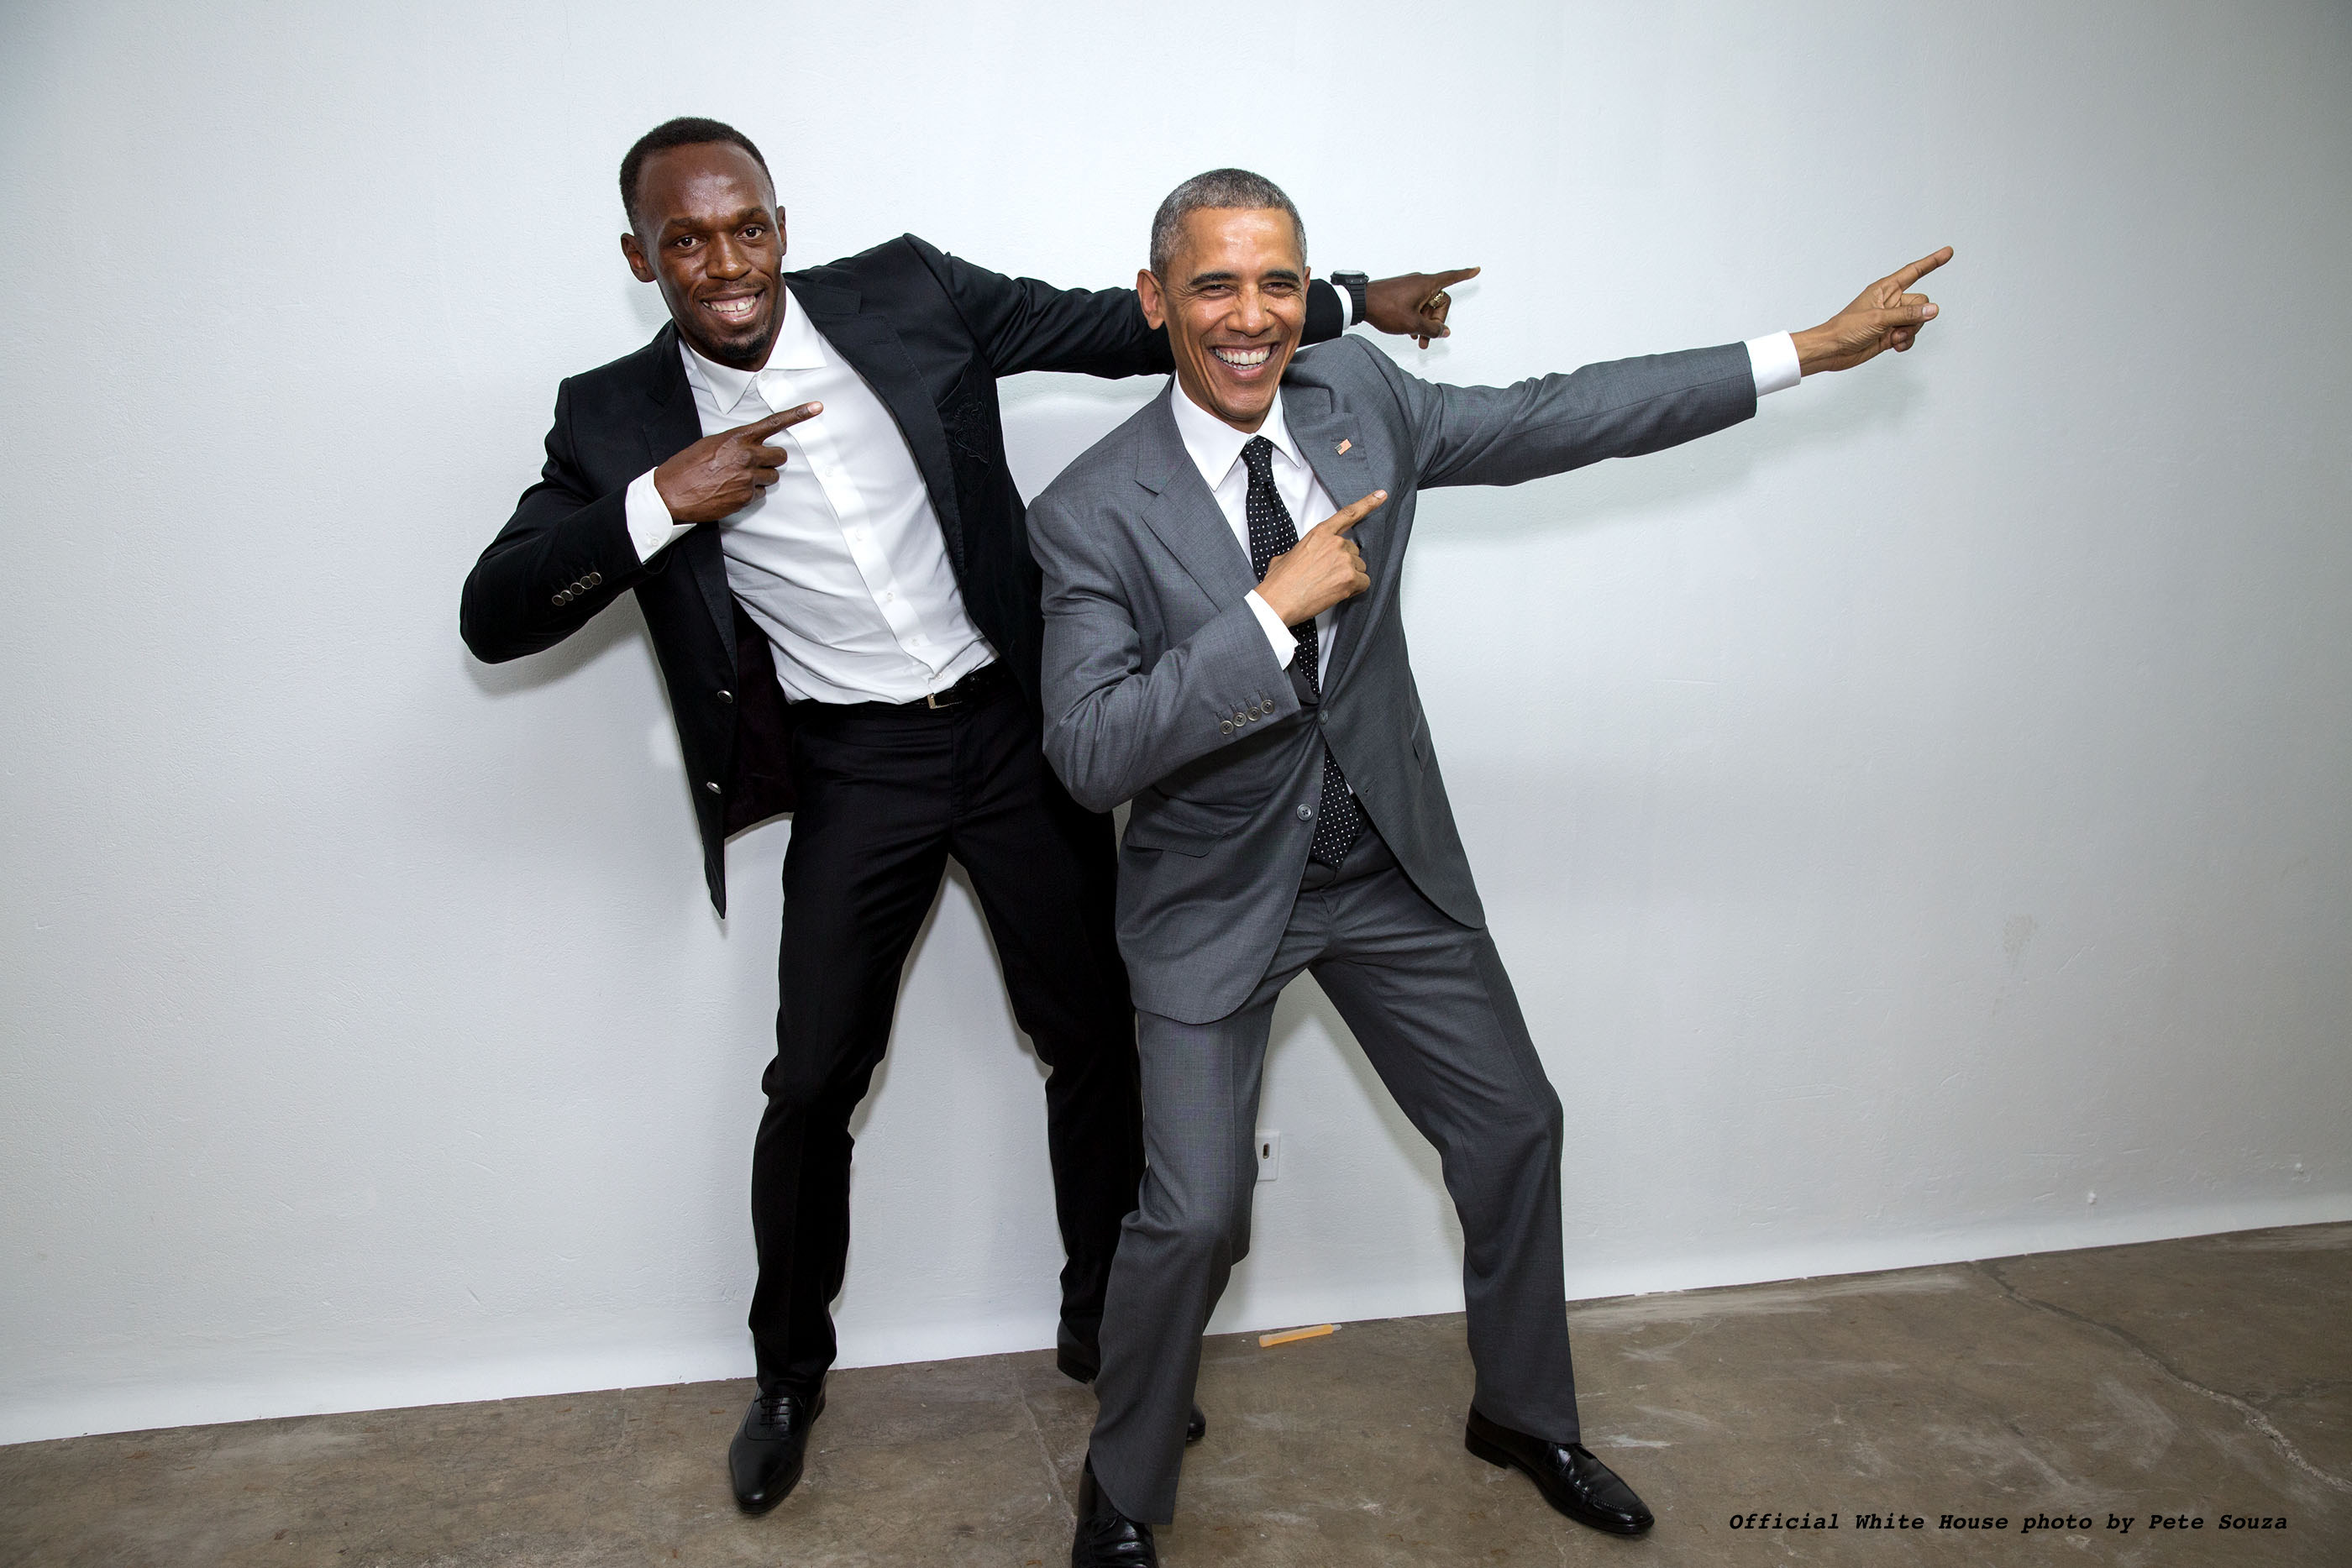 POTUS strikes a pose with Usain Bolt. April, 2015.